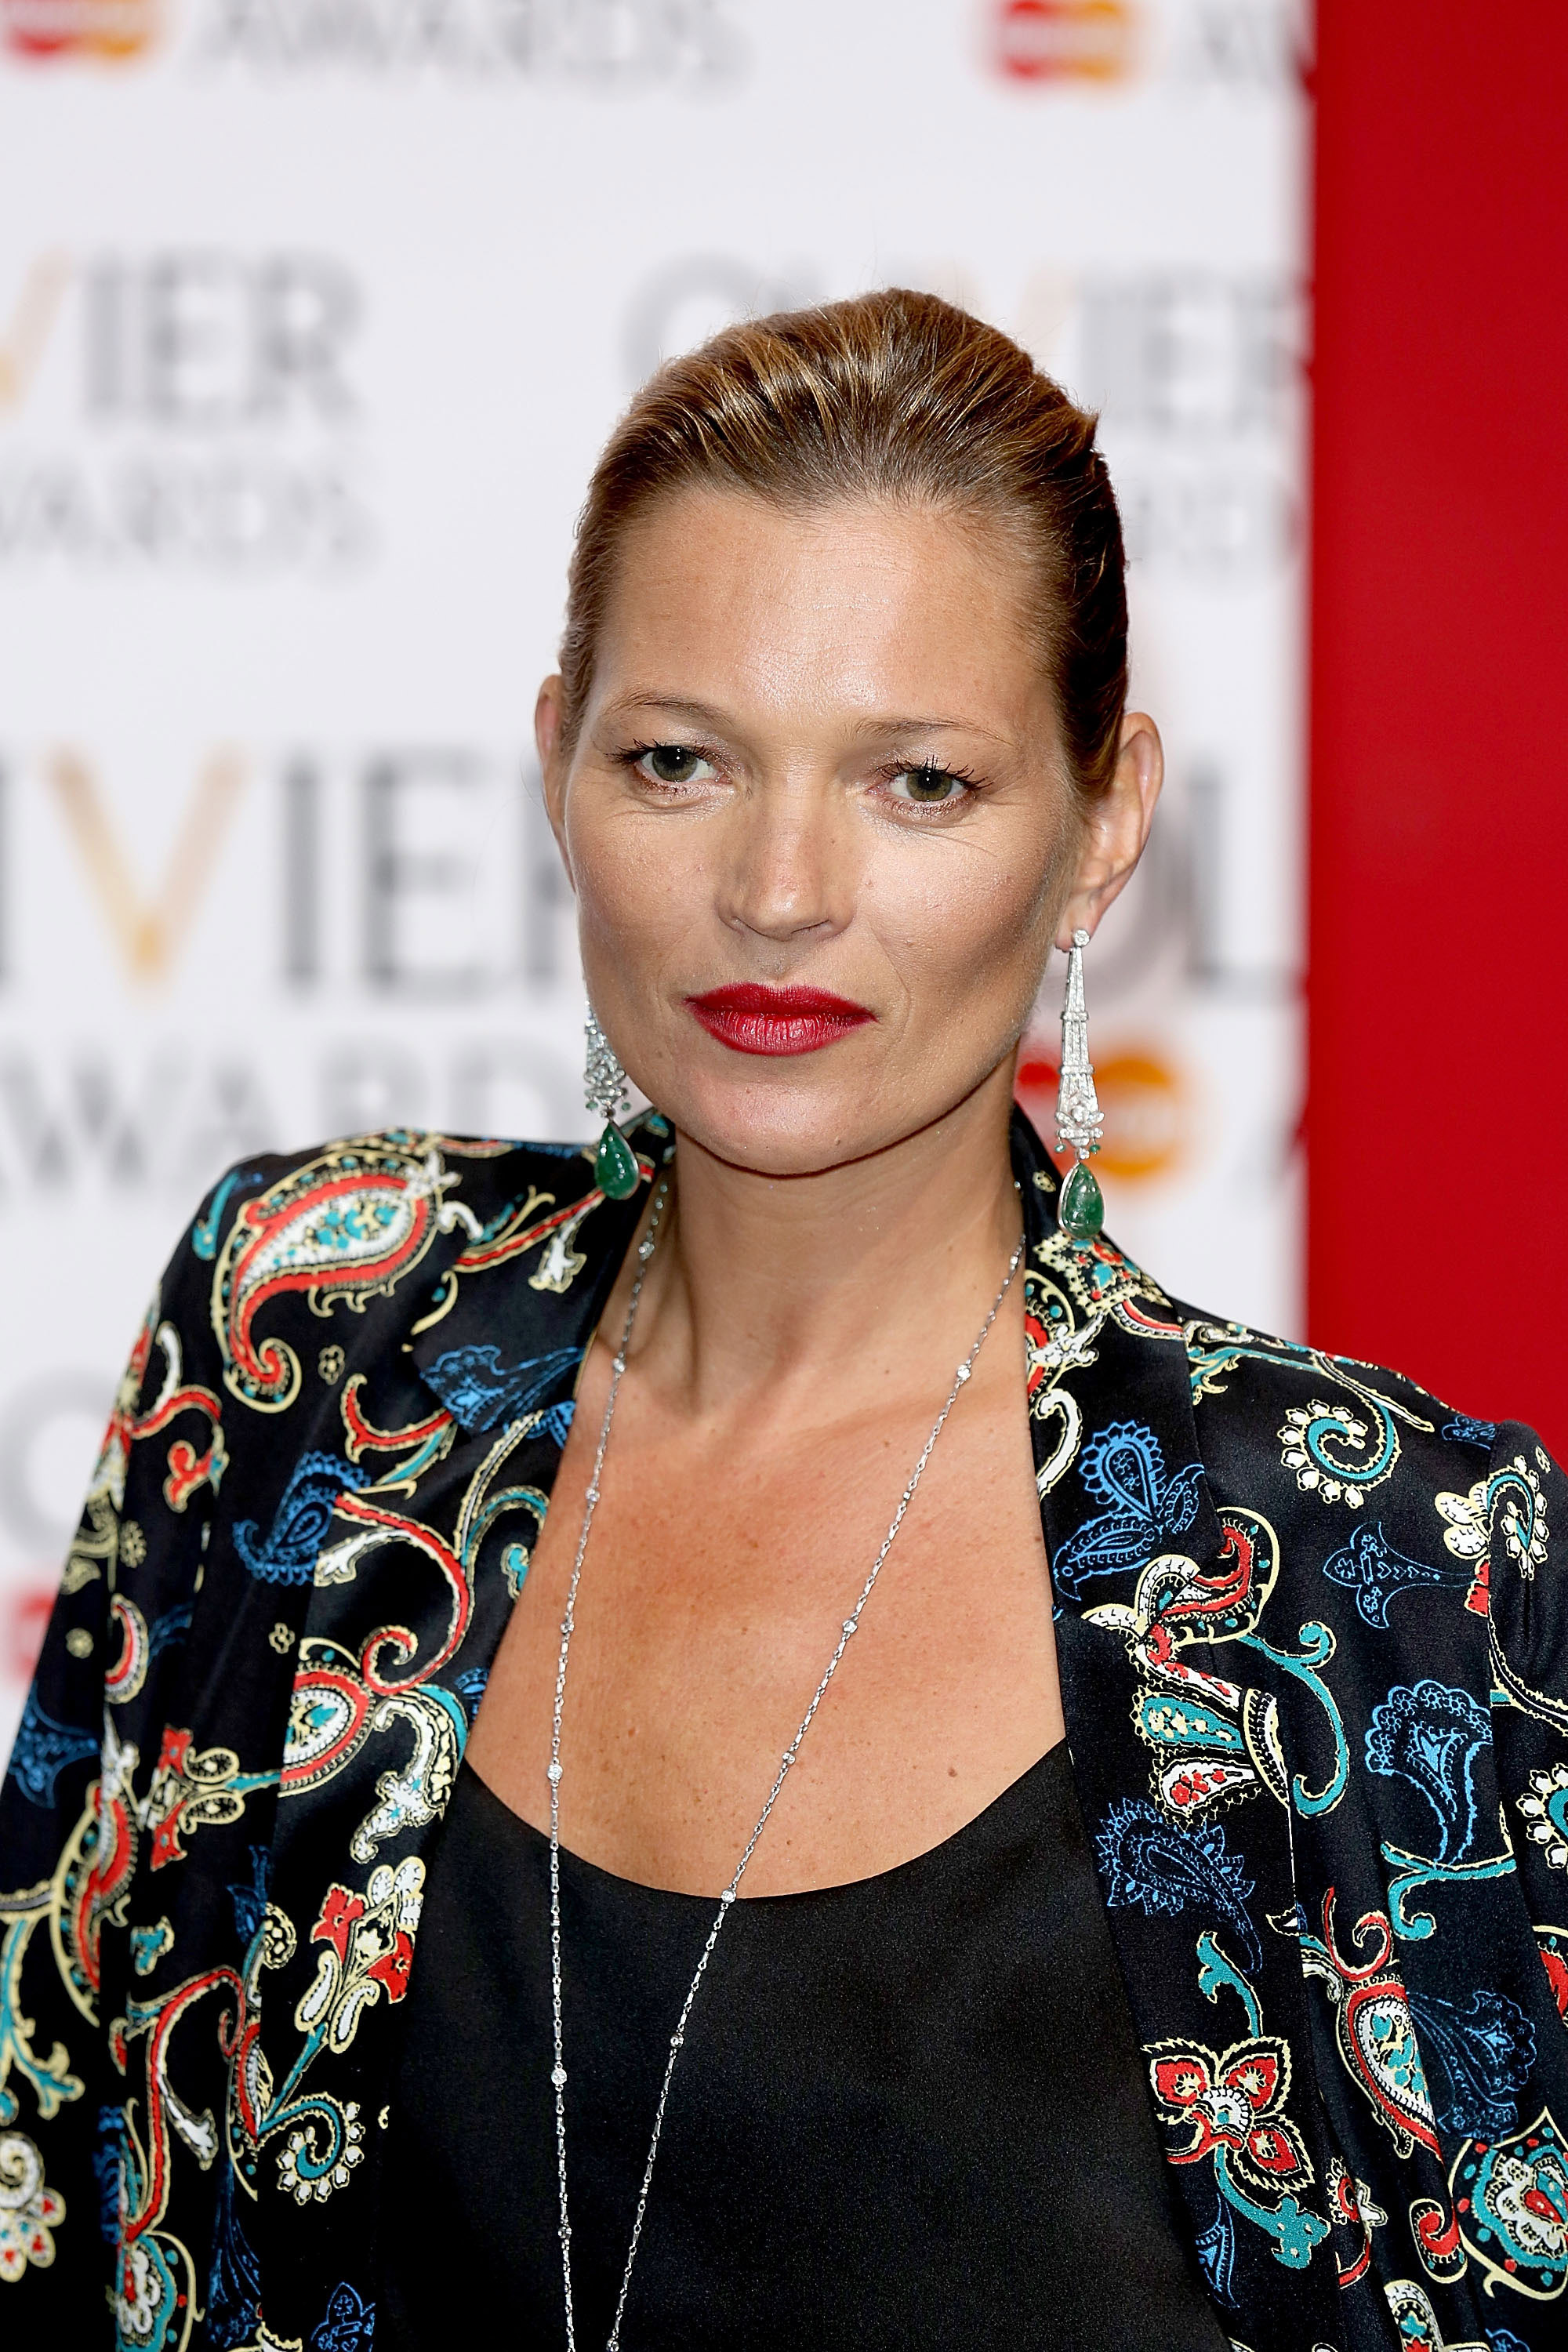 LONDON, ENGLAND - APRIL 13:  Kate Moss poses in the press room at the Laurence Olivier Awards at The Royal Opera House on April 13, 2014 in London, England.  (Photo by Tim P. Whitby/Getty Images)